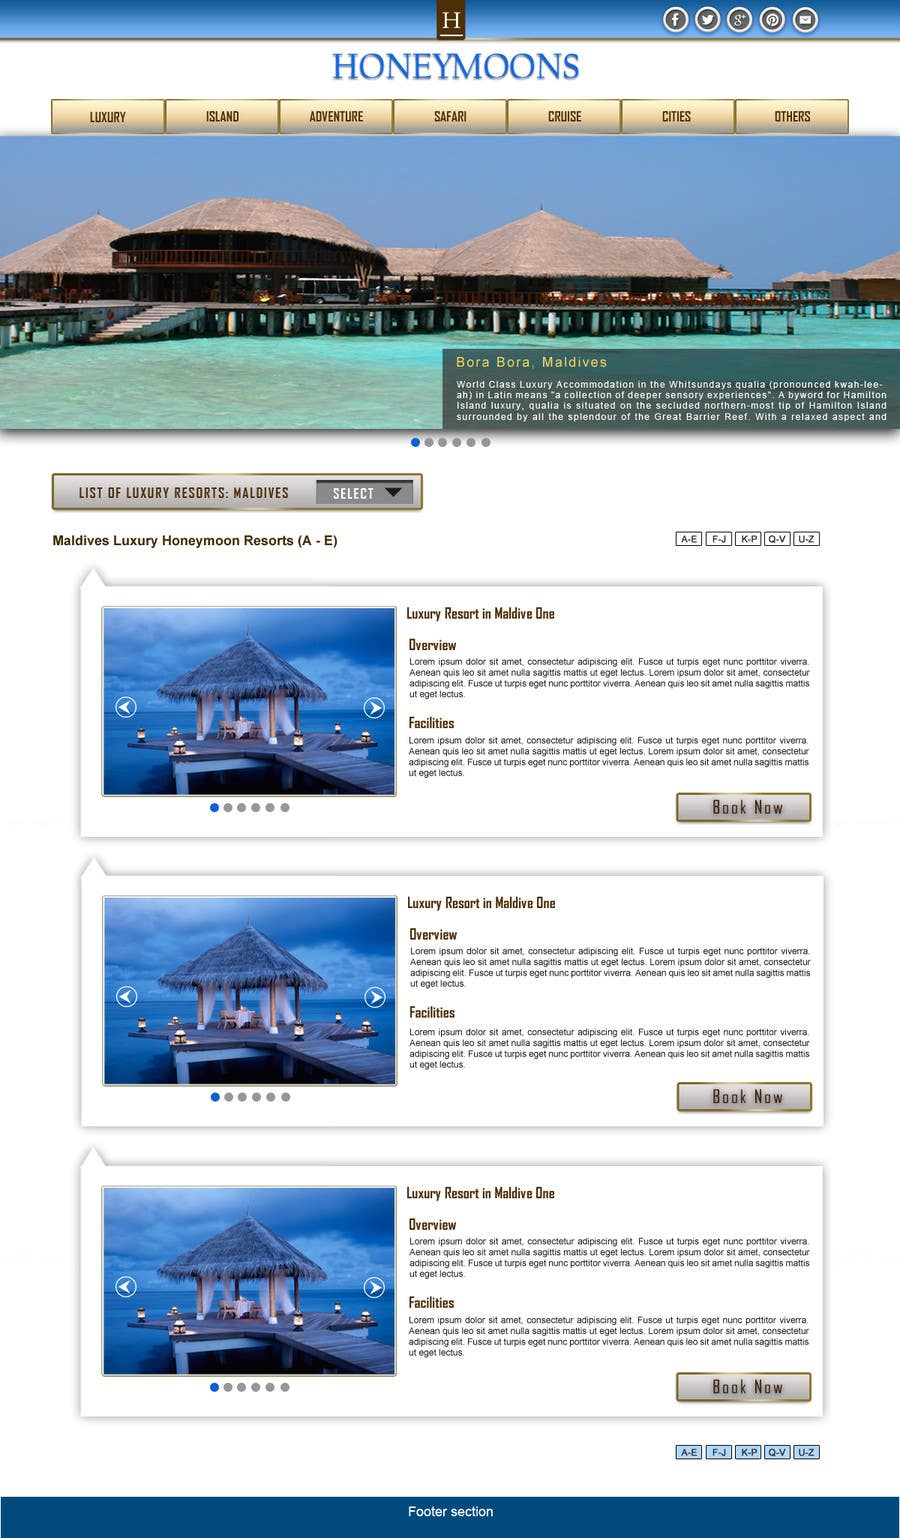 Penyertaan Peraduan #                                        47                                      untuk                                         Website Design for Honeymoons website